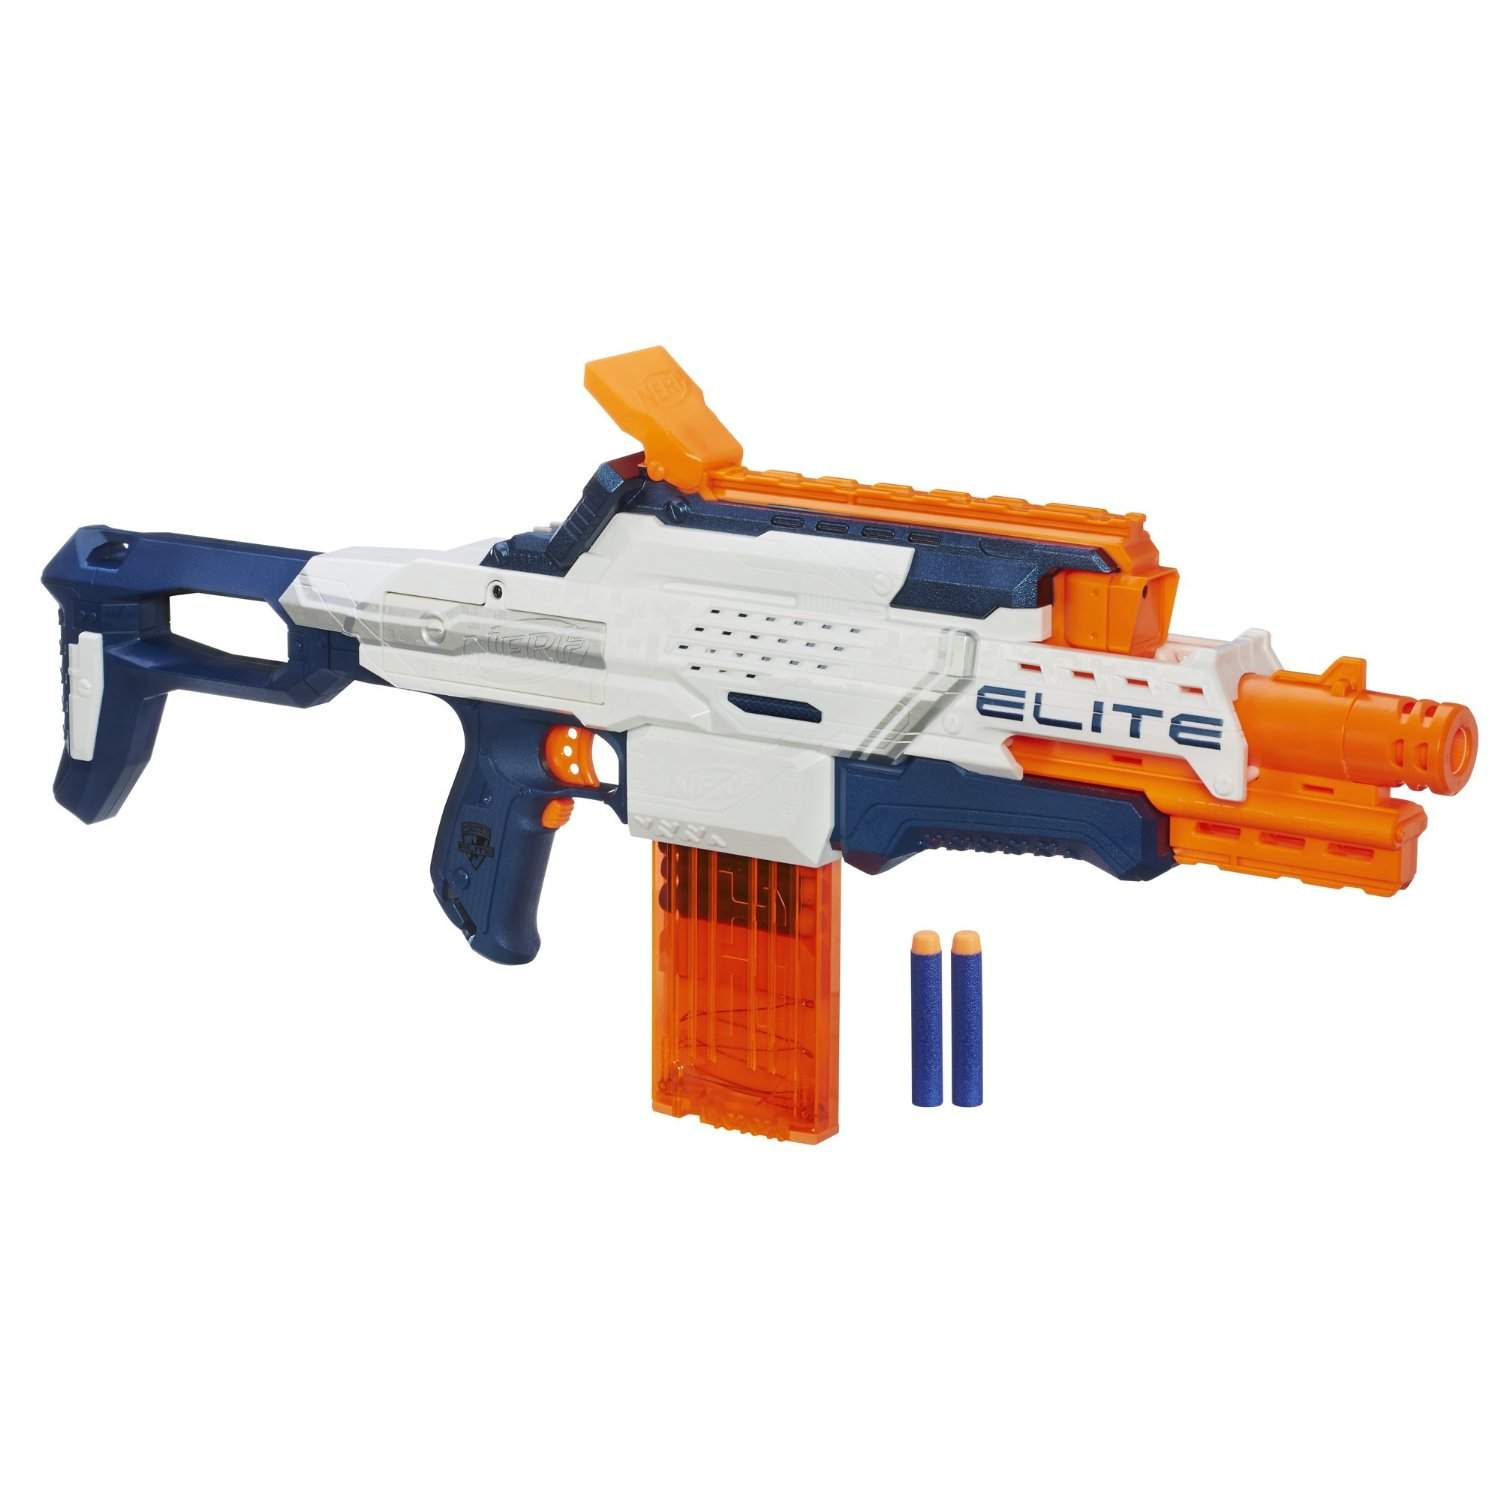 World's Largest NERF Gun